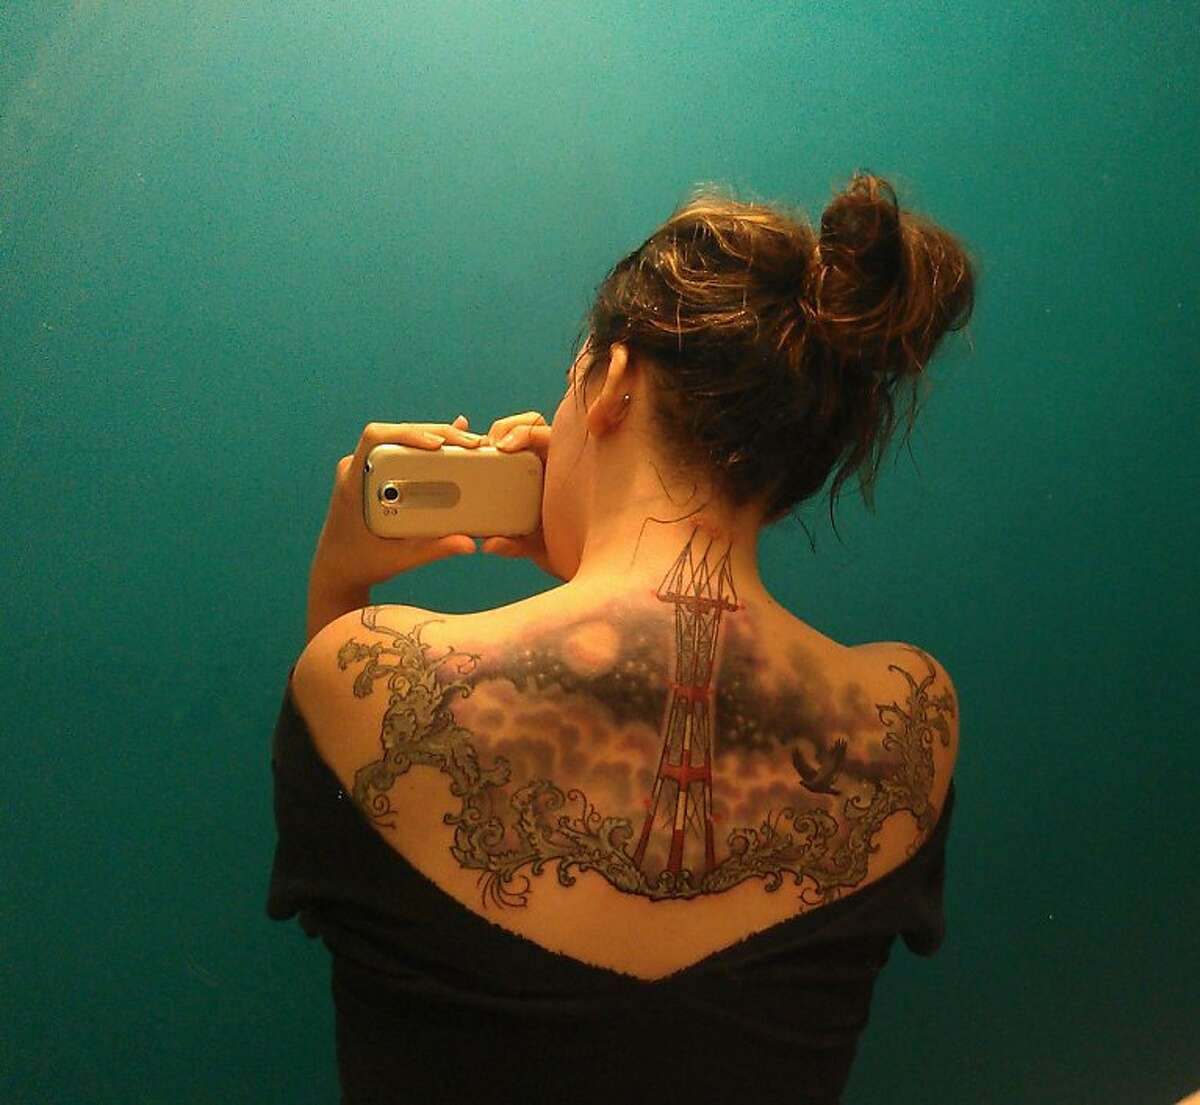 Elly Jonez of San Francisco is one of several young locals with Sutro Tower tattooed on her body. The tattoos have been chronicled on the blog Uptown Almanac.